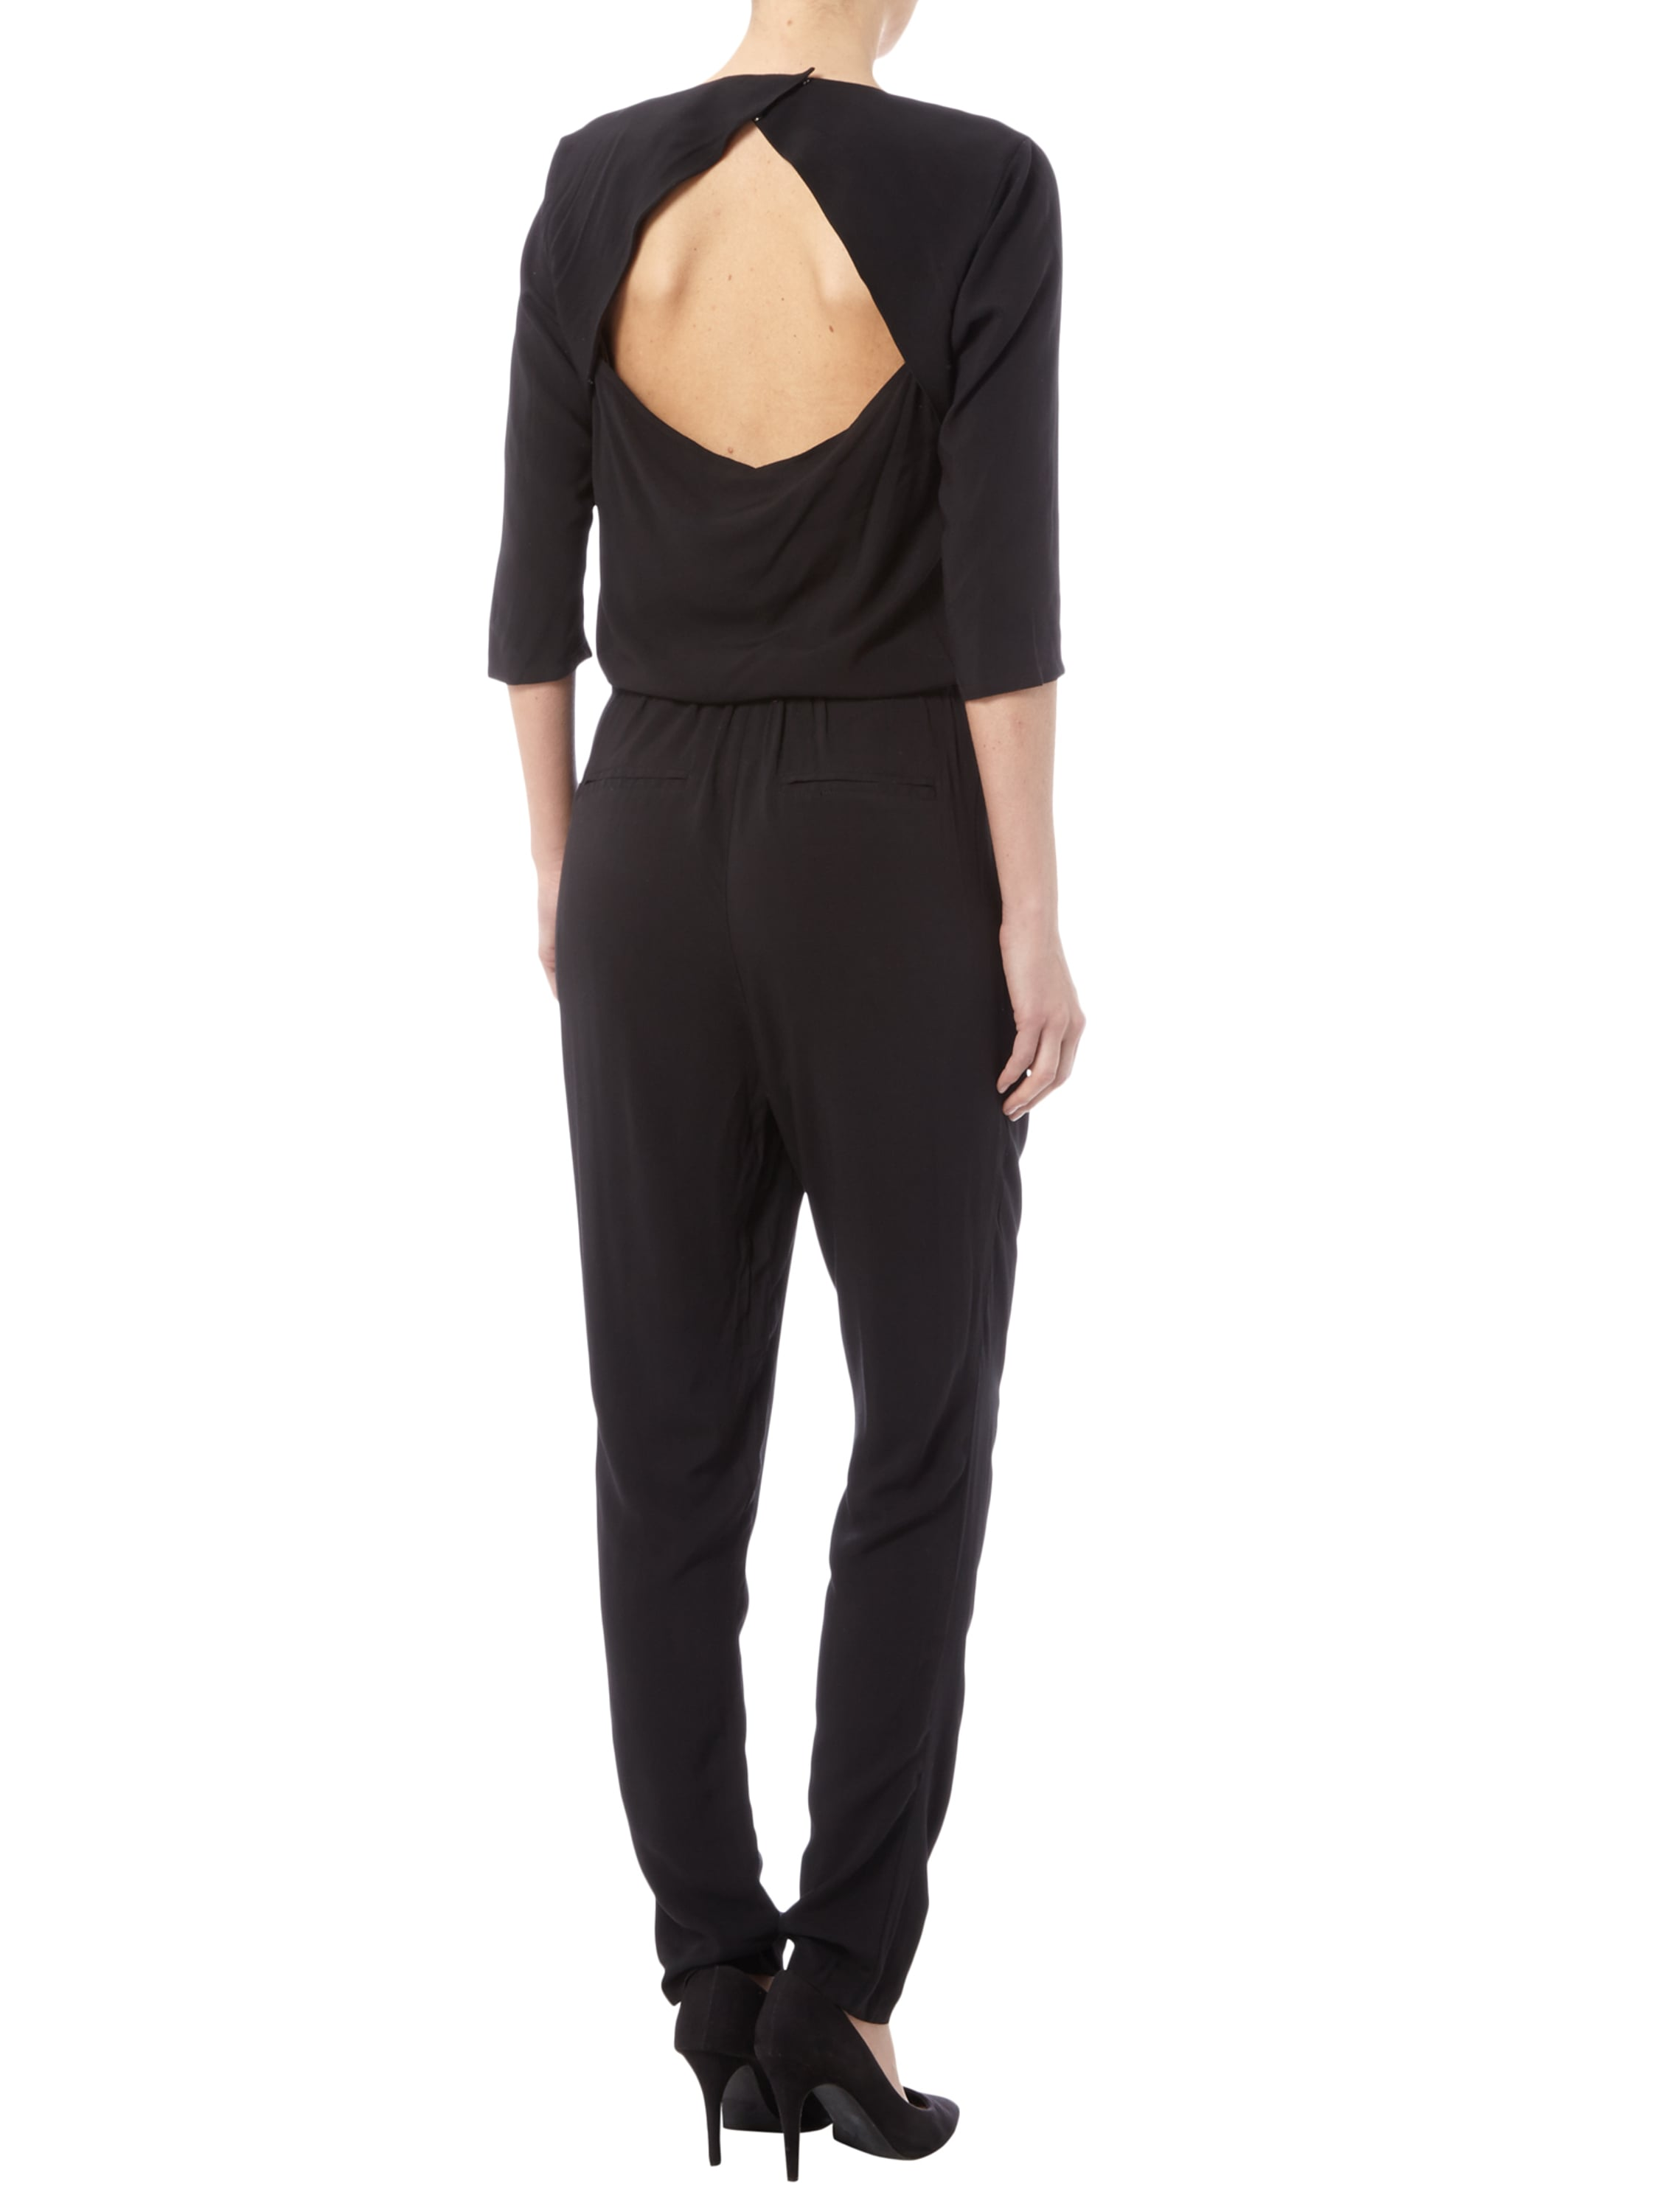 jumpsuit aus viskose mit r ckenausschnitt fashion id online shop. Black Bedroom Furniture Sets. Home Design Ideas